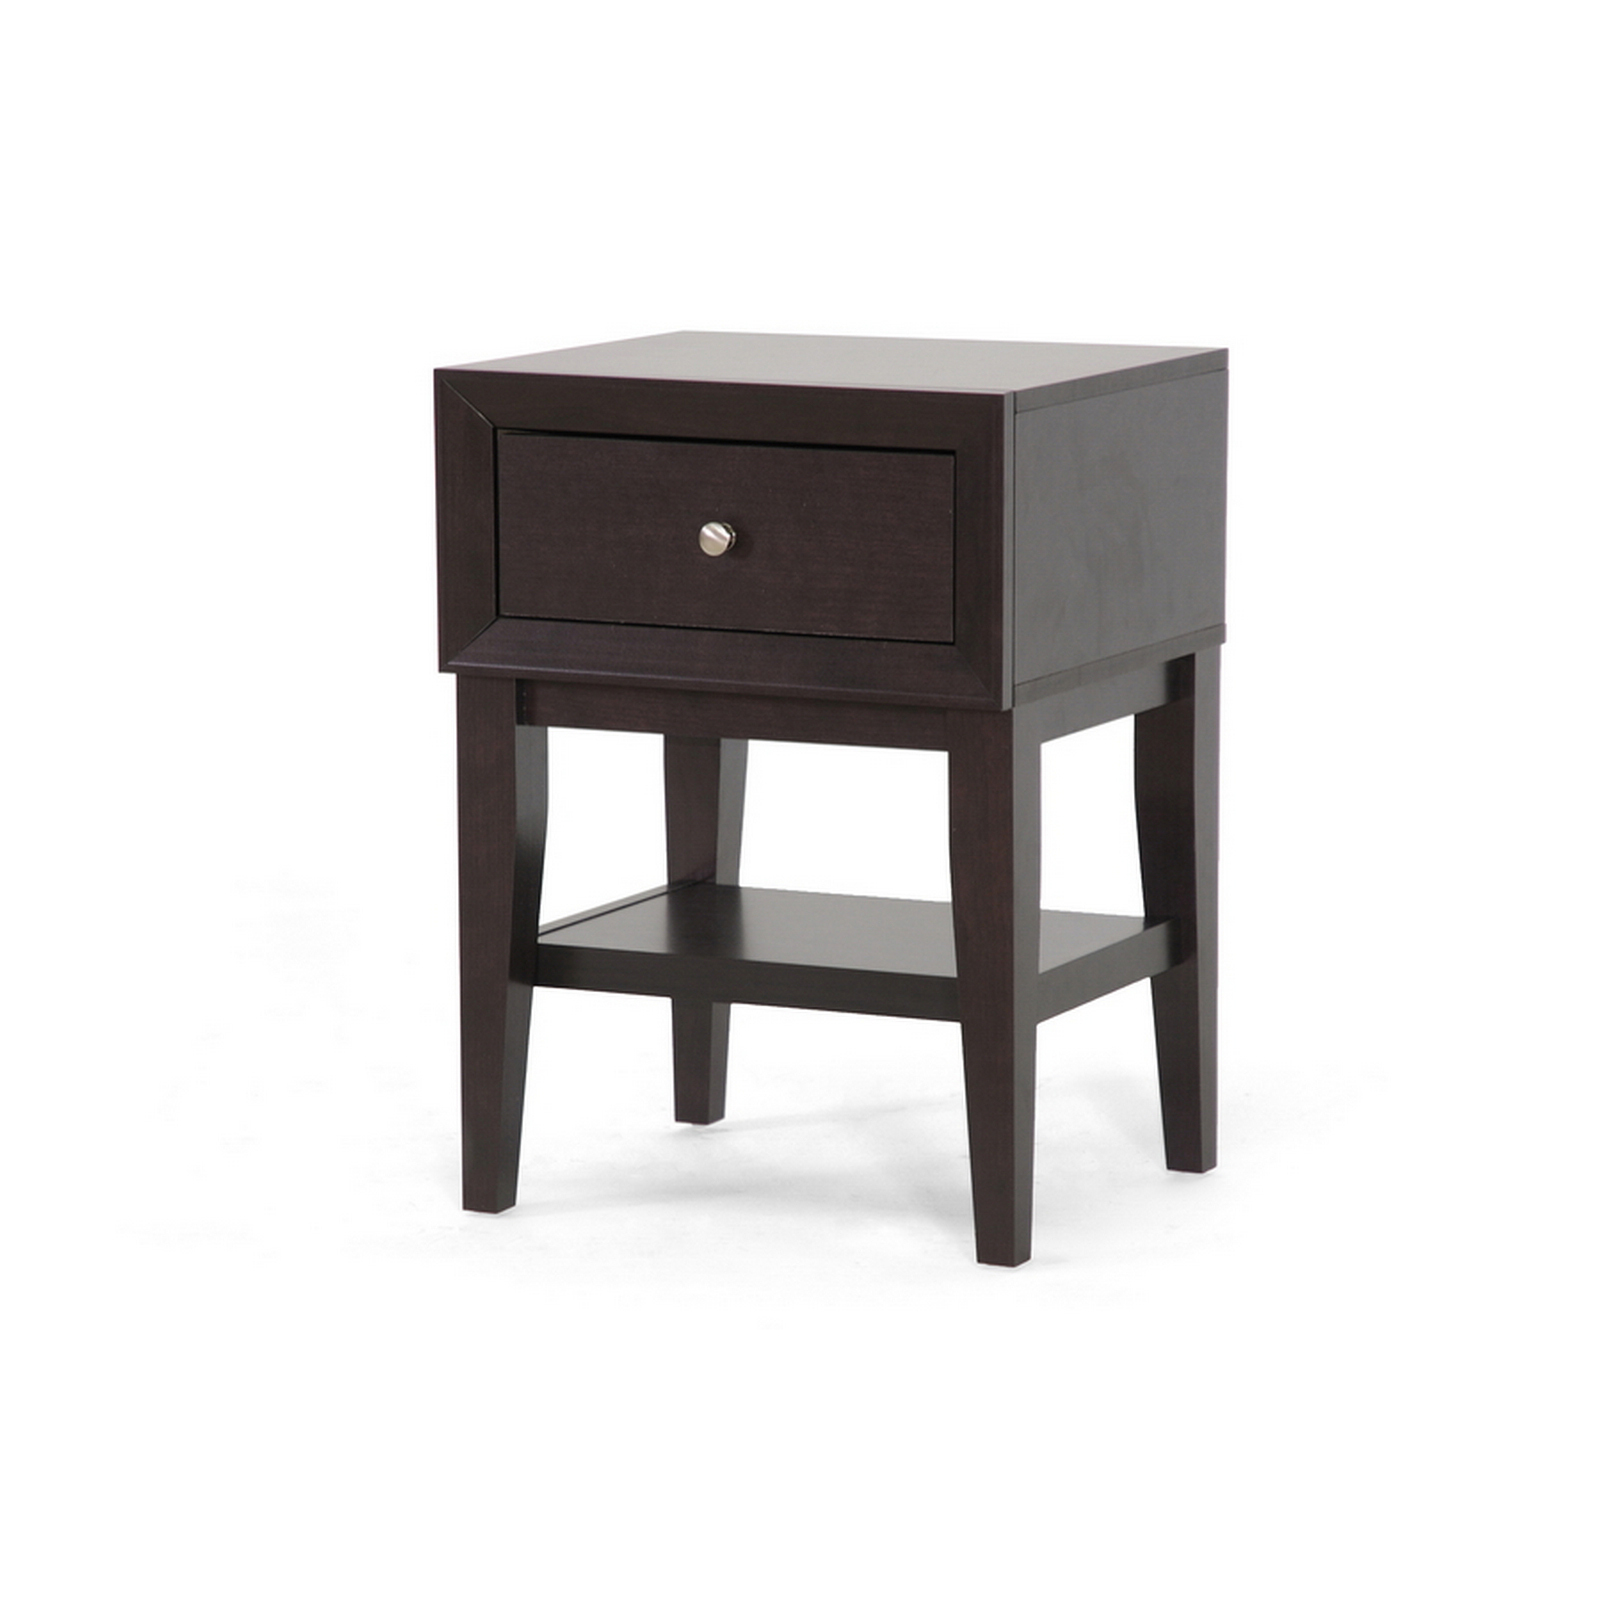 mom urban designs inch gaston brown modern accent table and nightstand baxter furniture piece marble set ikea small storage boxes tablecloth for rectangle large square coffee